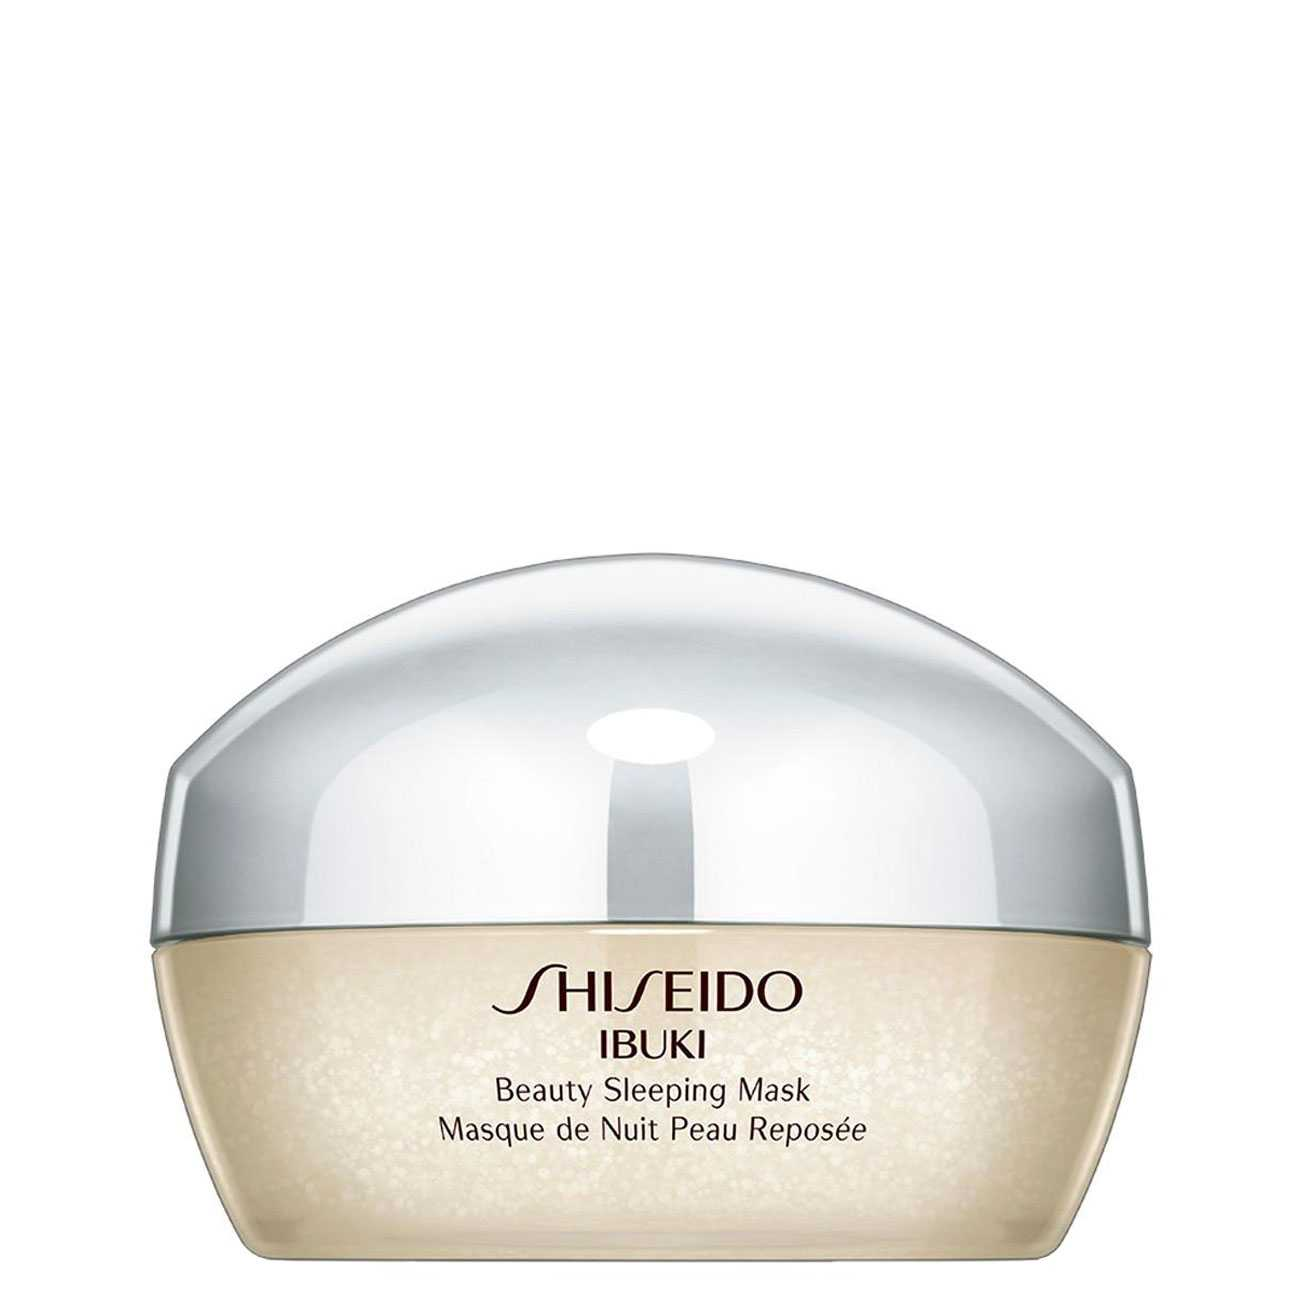 Ibuki Beauty Sleeping Mask 80 Ml Shiseido imagine 2021 bestvalue.eu